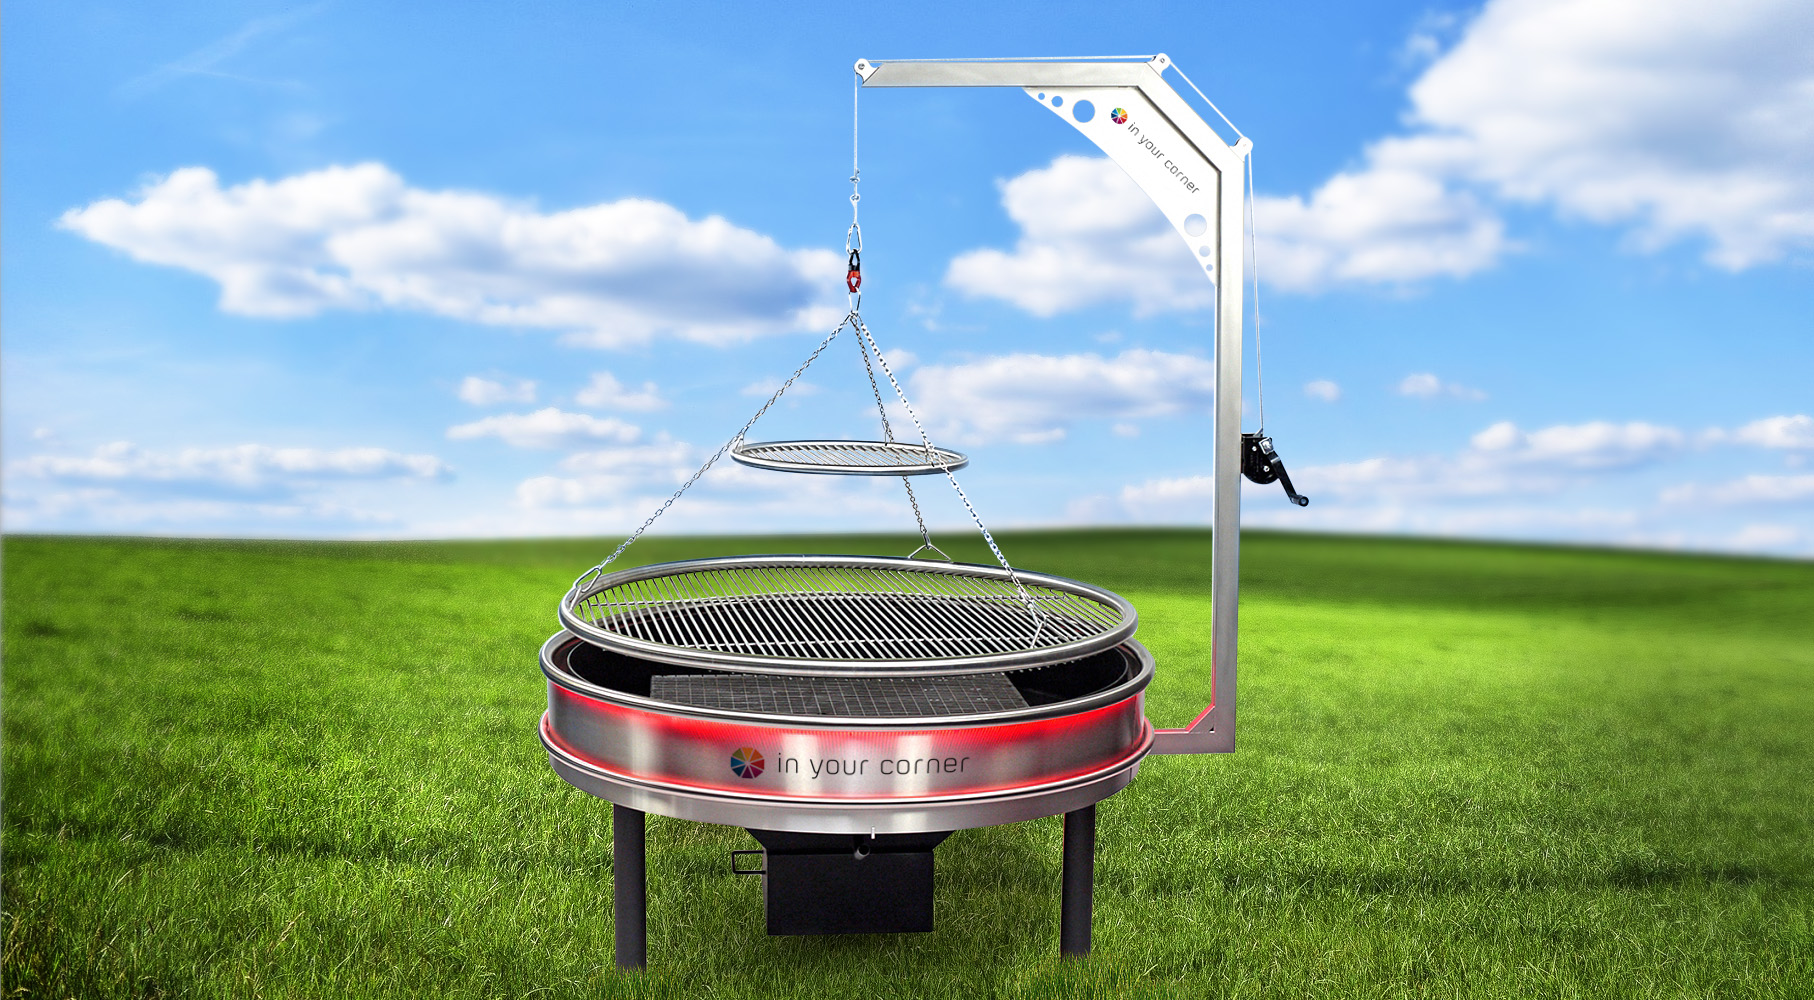 <p>Sanki Swinging Grills Lumiere Ash Drawer Hopper Warming Circle & LED Lights</p> <p></p> <p>Displaying the Lumiere model with the LED Lights & Ash Drawer and Hopper, available to catch the ash and allowing for use over longer periods of time.</p> <p></p> <p>Create the ideal focal point at your hospitality outdoor space helping to serve customers whilst relieving kitchen staff</p>